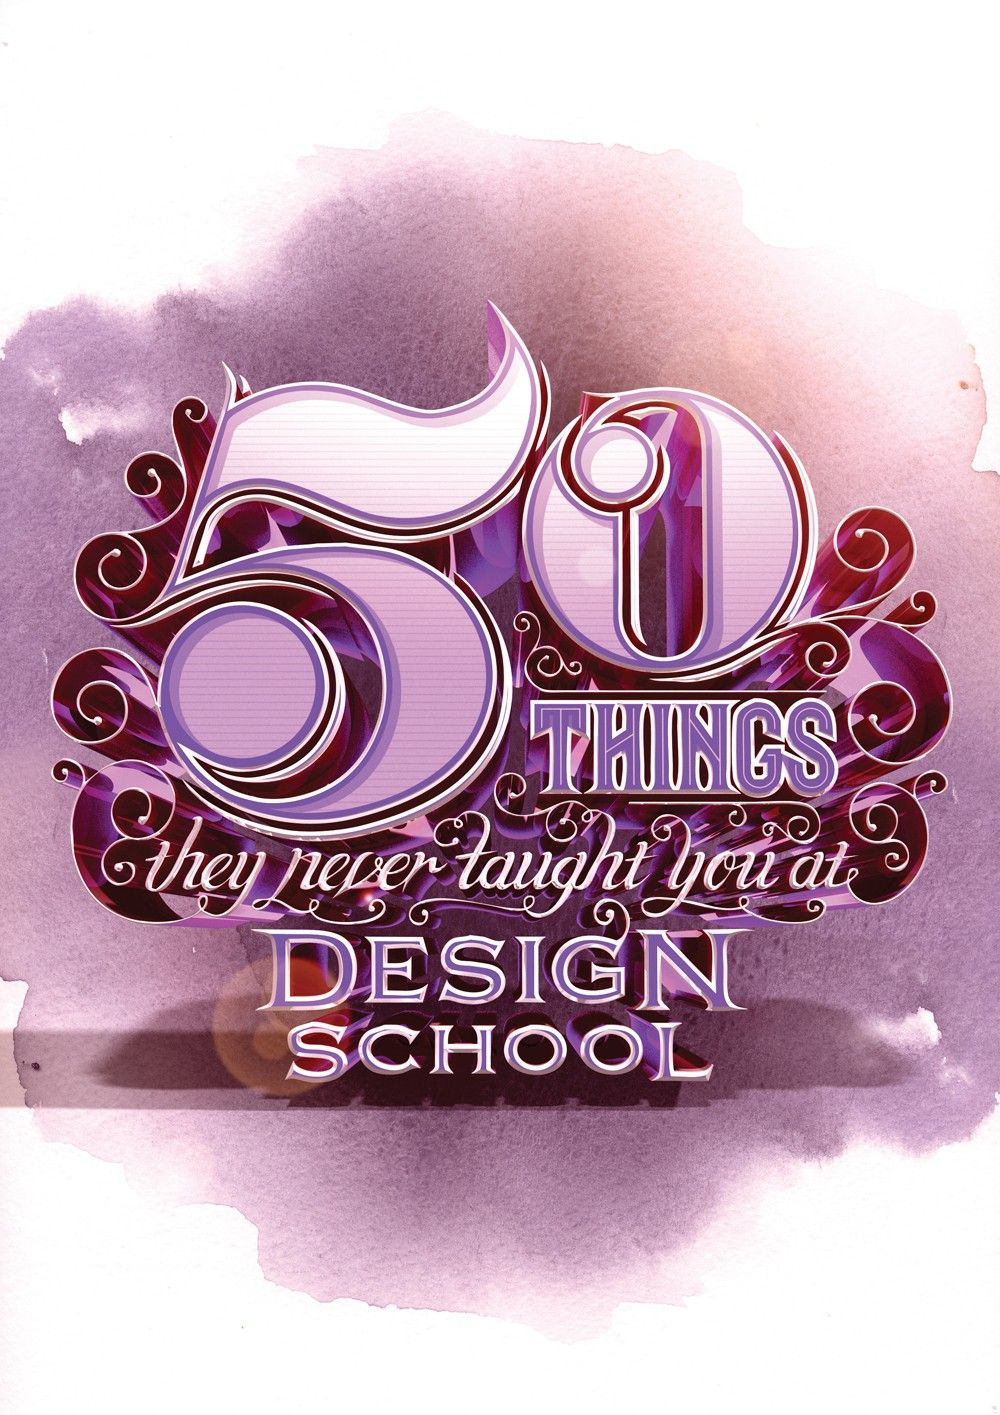 Craig minchington looks at how to design elegant 3d type using the type tutorial create type using photoshop 30 eye catching photoshop tutorials for designers baditri Image collections